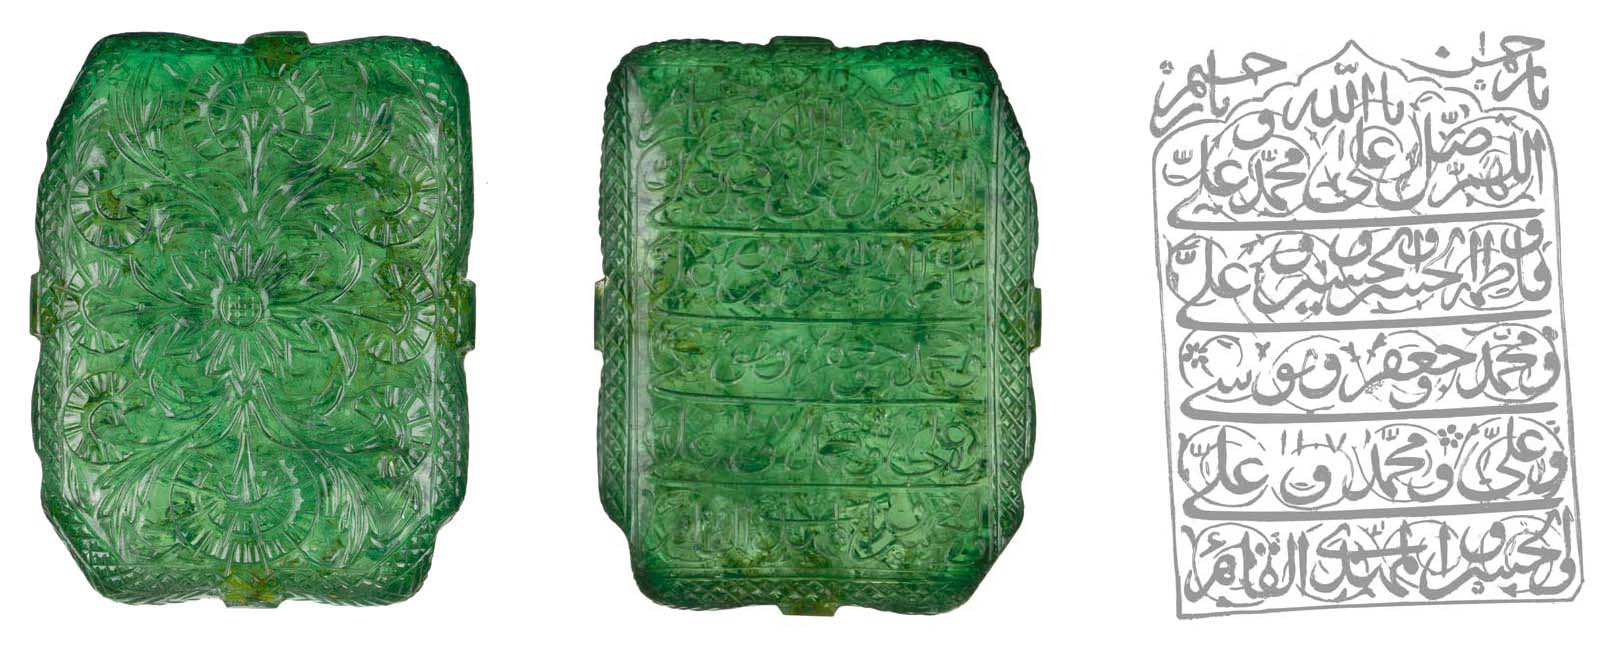 The Mogul Emerald - only known emerald of the Mogul Period; dated near 1695; 10cm tall; weighs 217.8 carats; with intricate floral design including a rosette with poppies and foliage on one side; an Islamic prayer on the other; sold at an auction in London for $2.2 million (US).